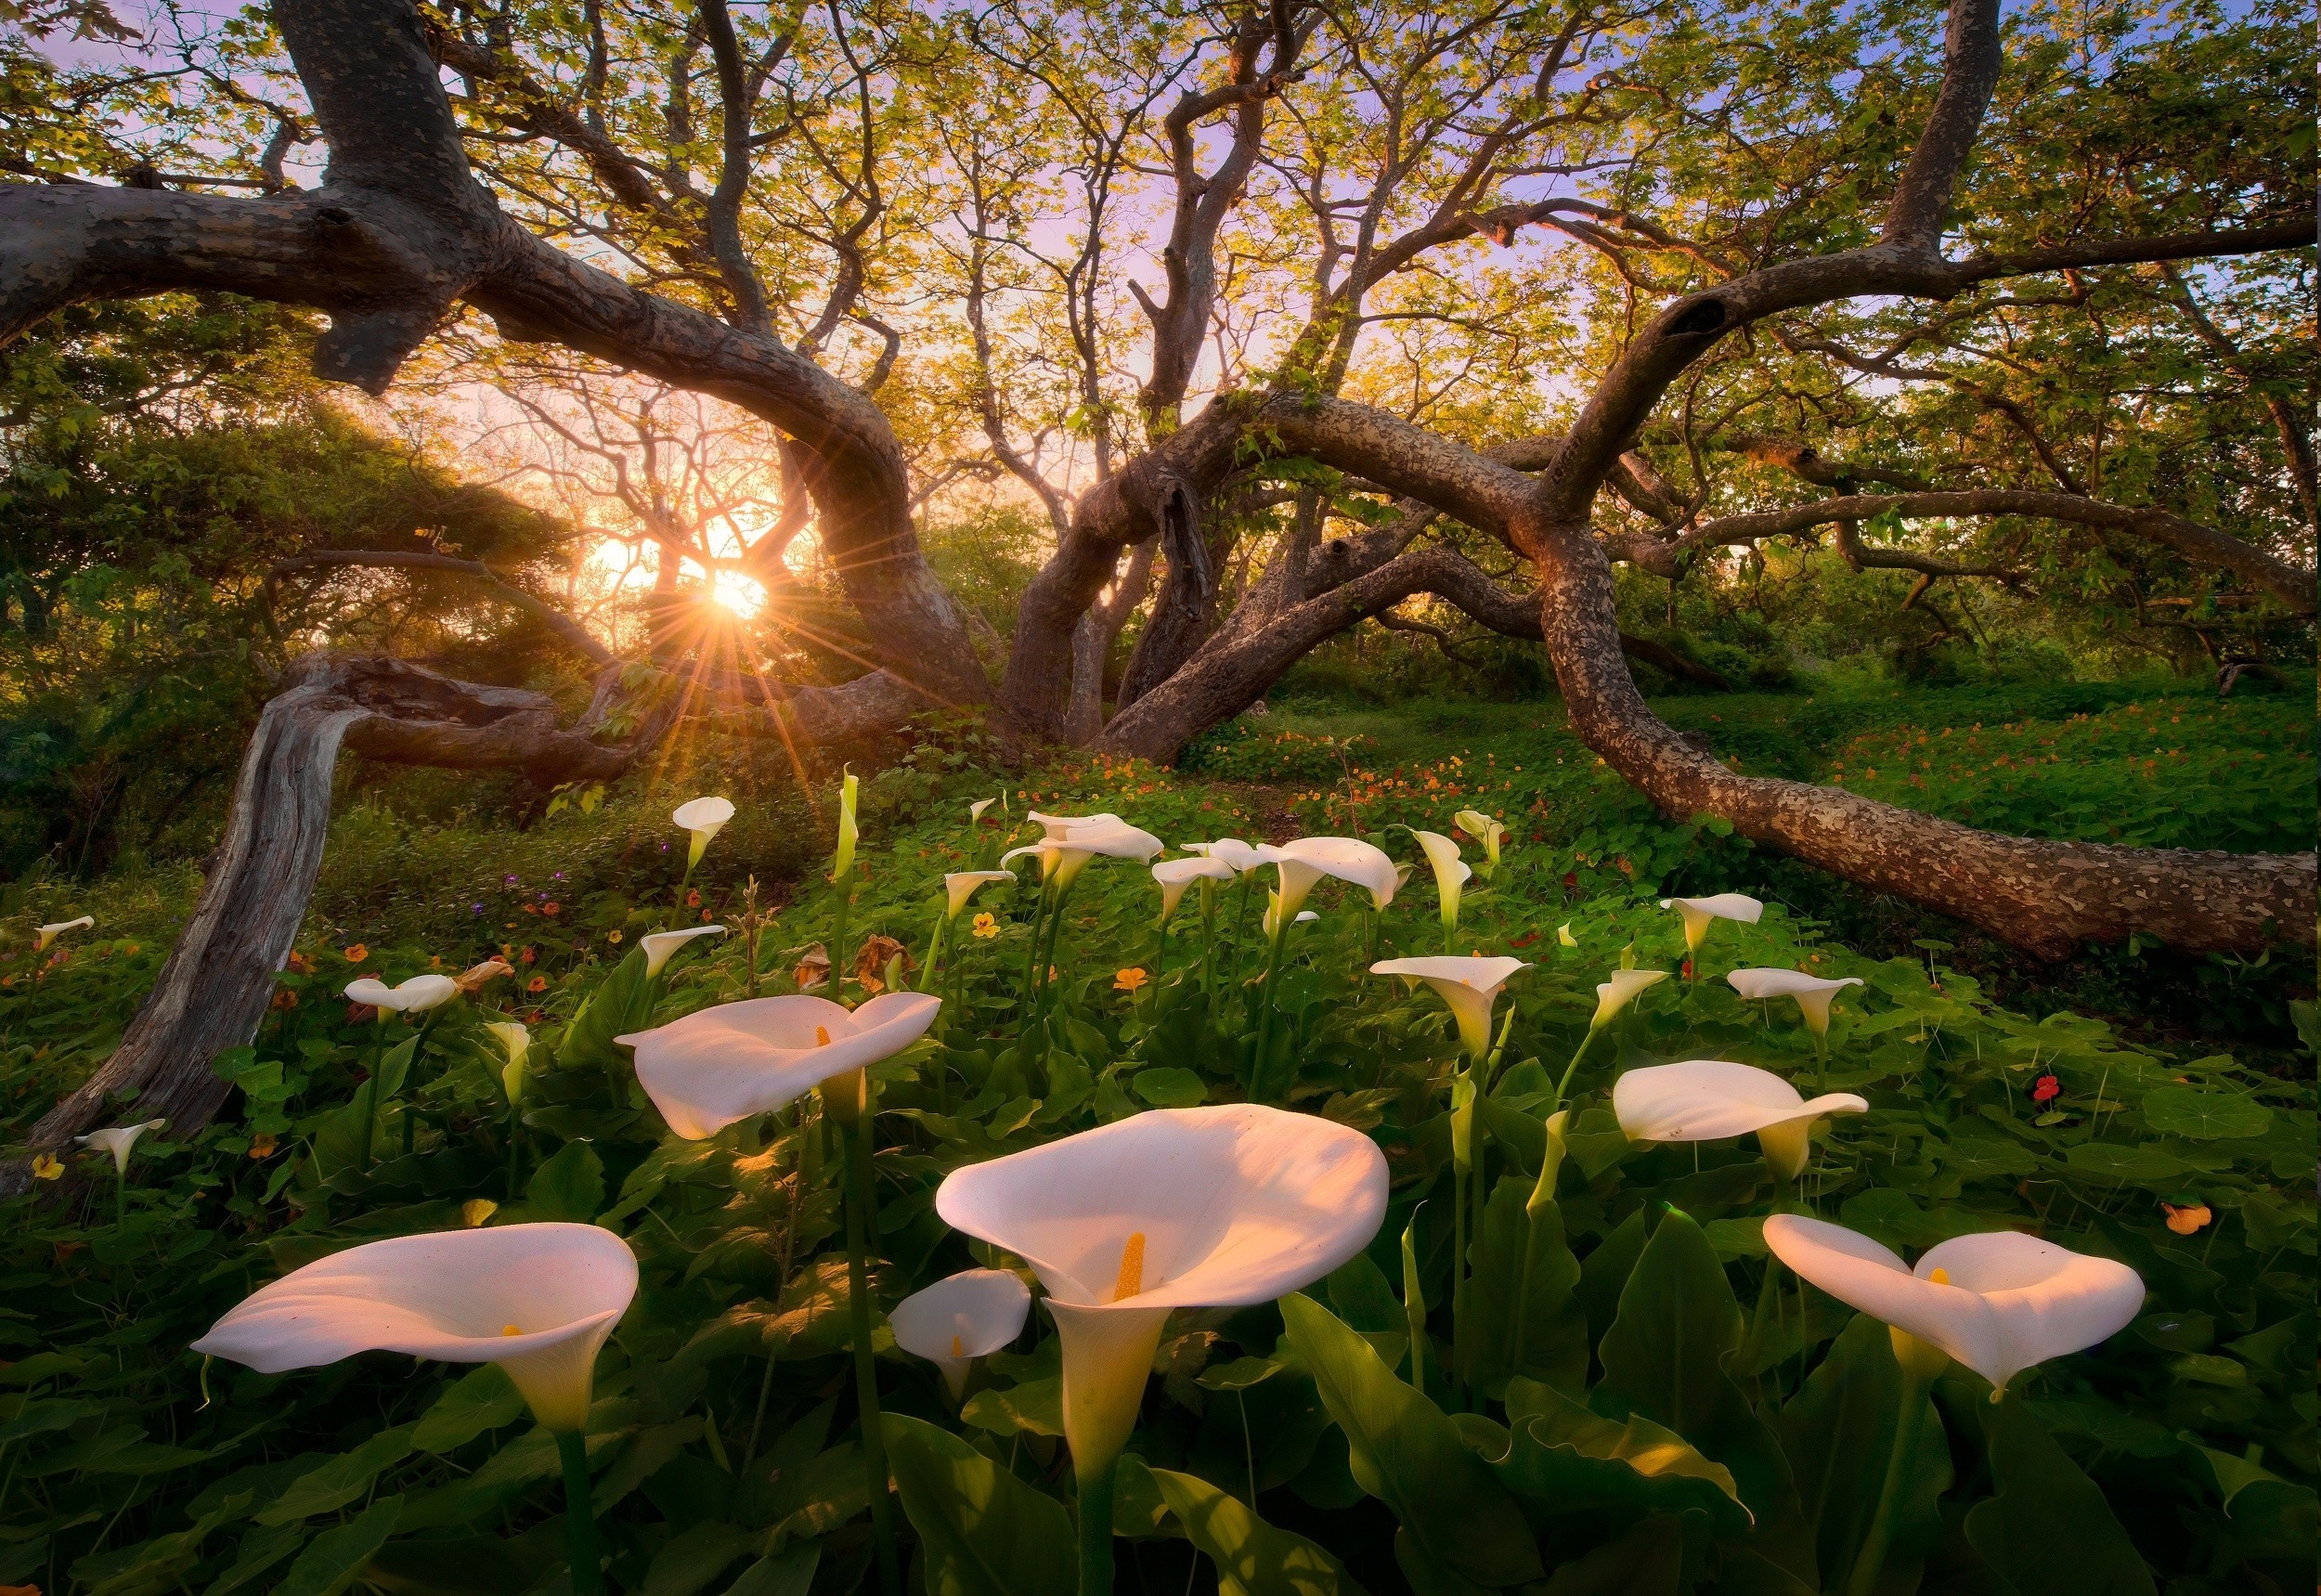 2500x1719 calla Lilies, Flowers, Trees, Sunset, Grass, Nature, Landscape, Spring  Wallpapers HD / Desktop and Mobile Backgrounds